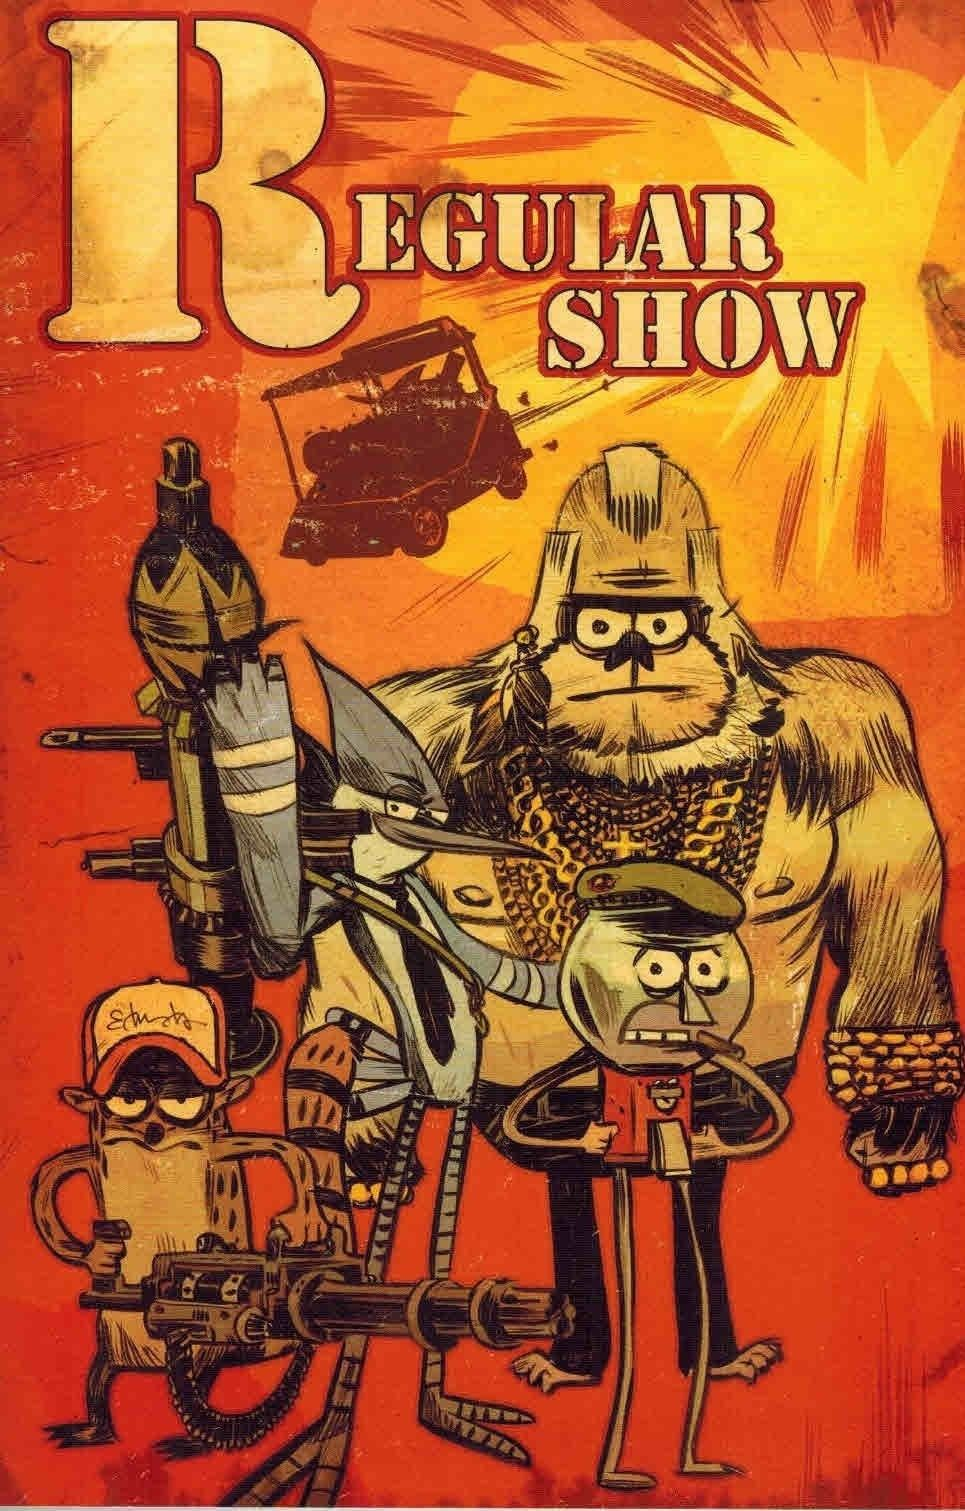 Regular Show Comic Book Covers